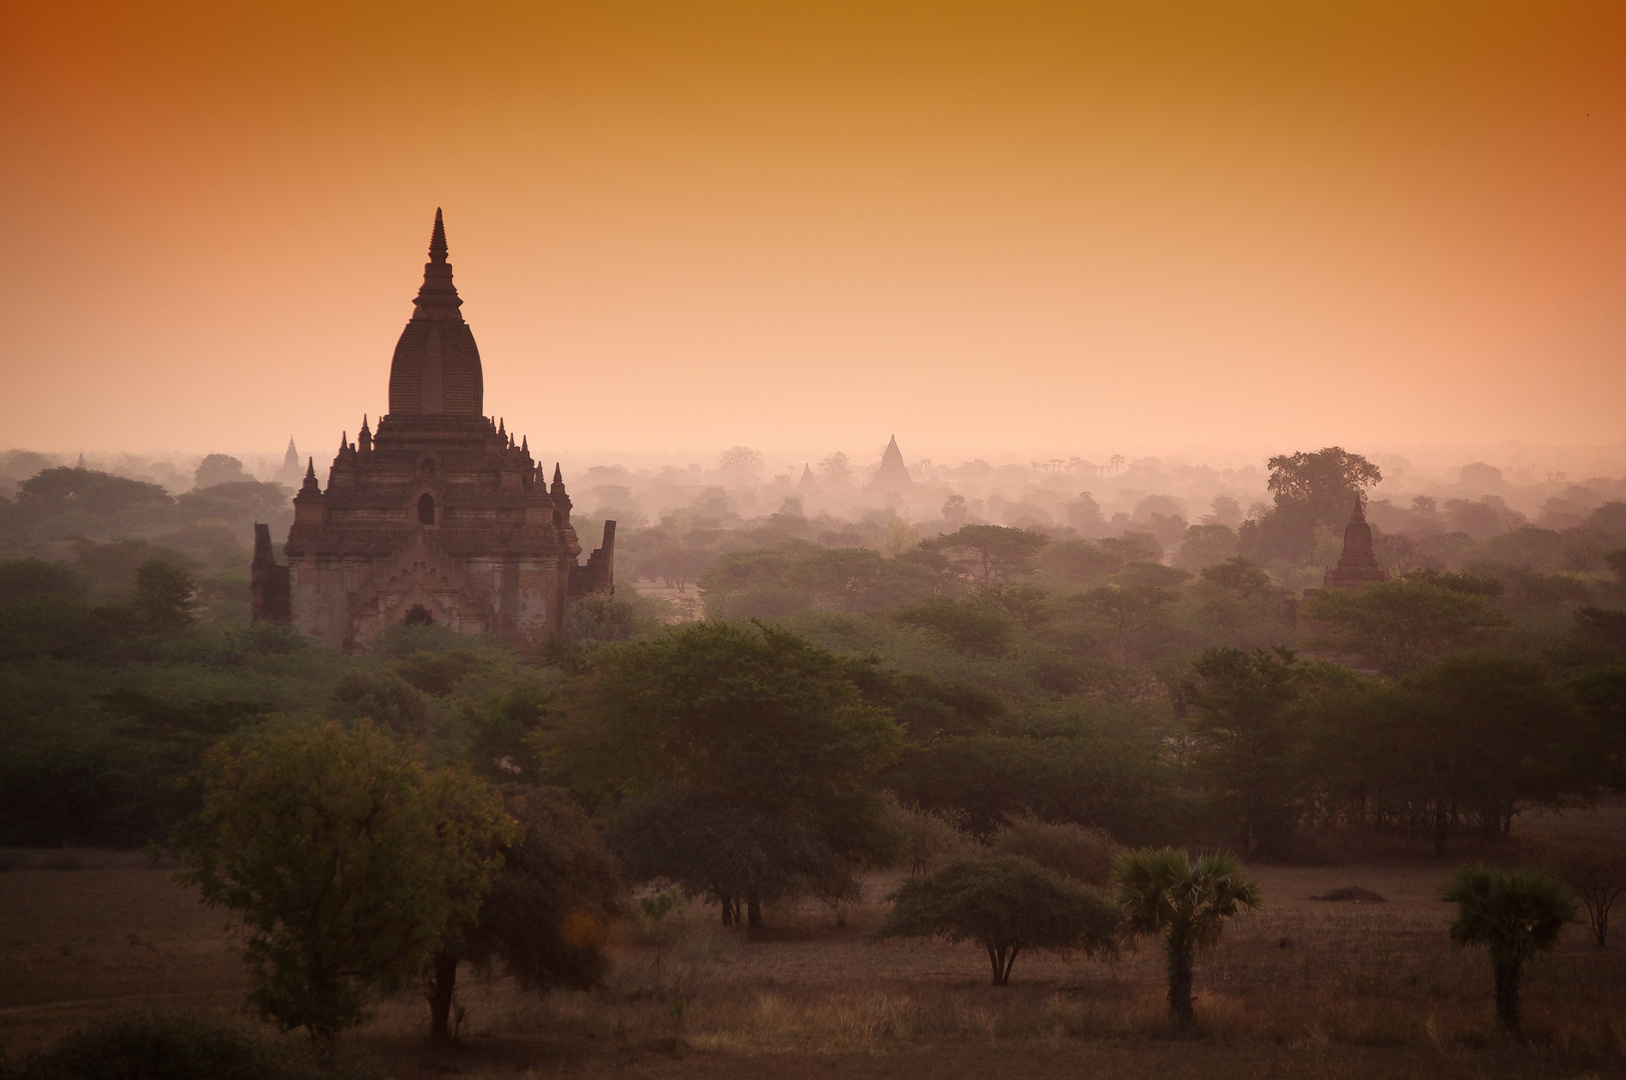 Morgenstimmung in Bagan